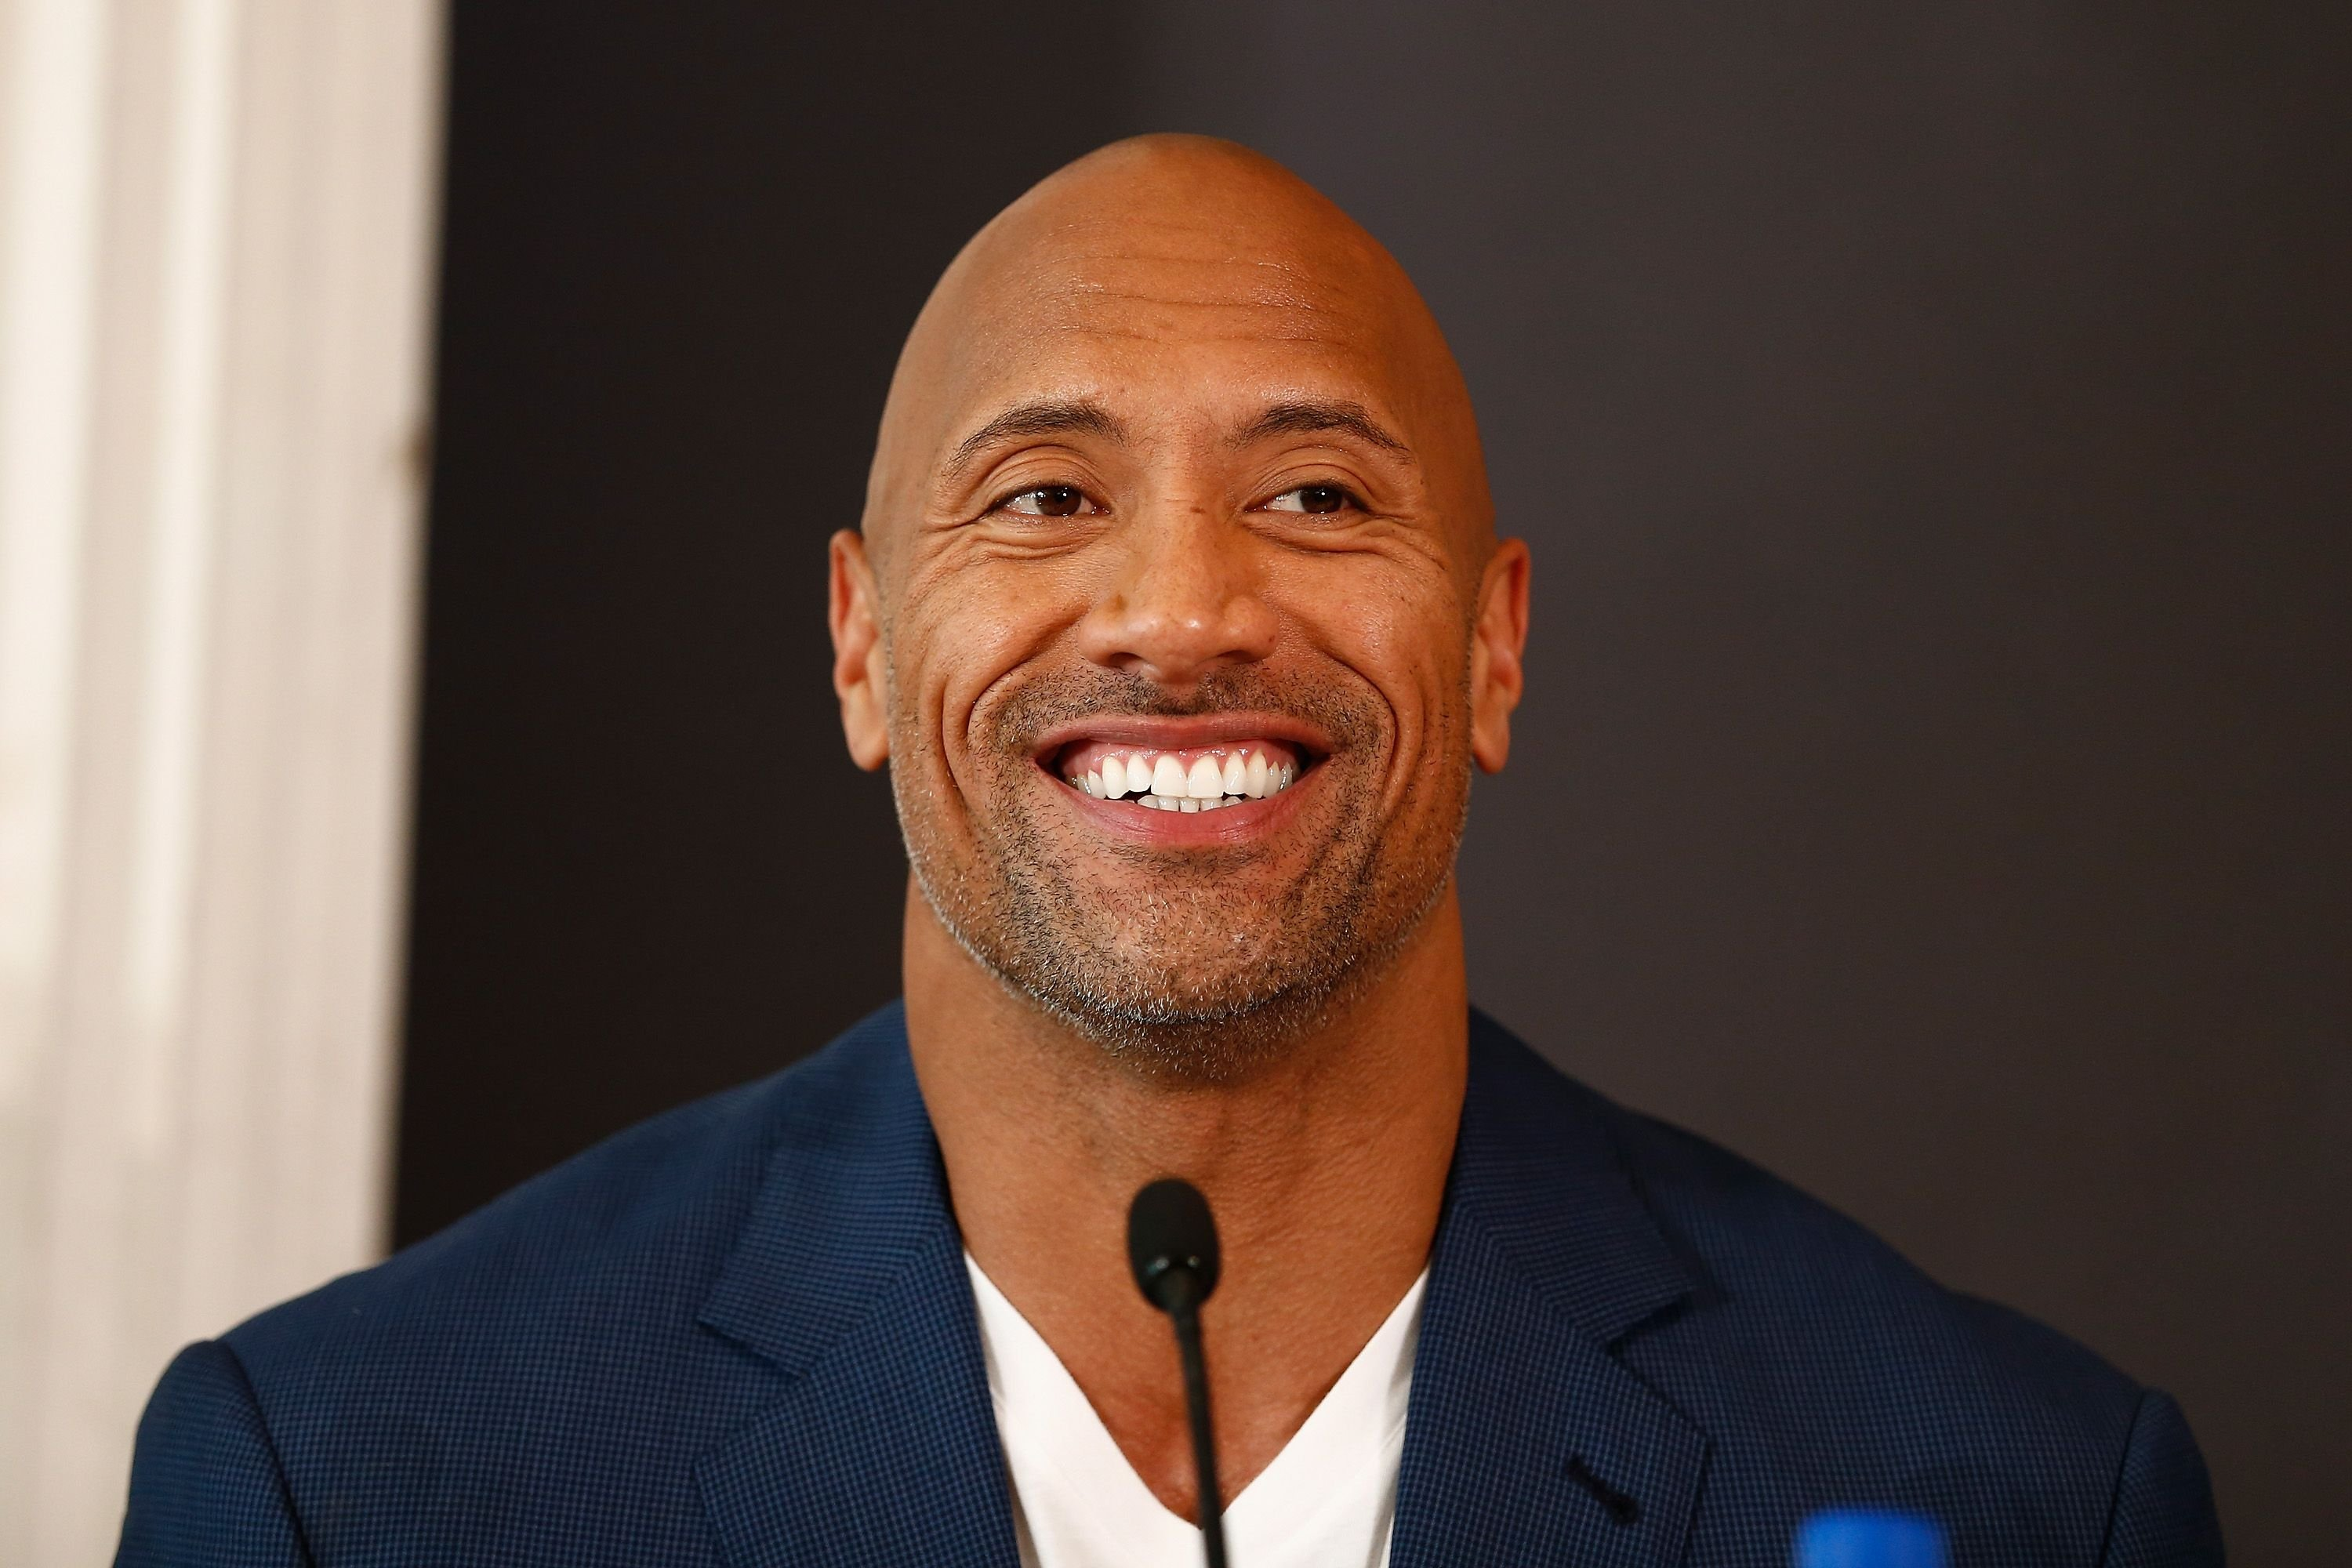 Dwayne Johnson at a press conference for 'Hercules' in 2014 in Berlin, Germany | Source: Getty Images